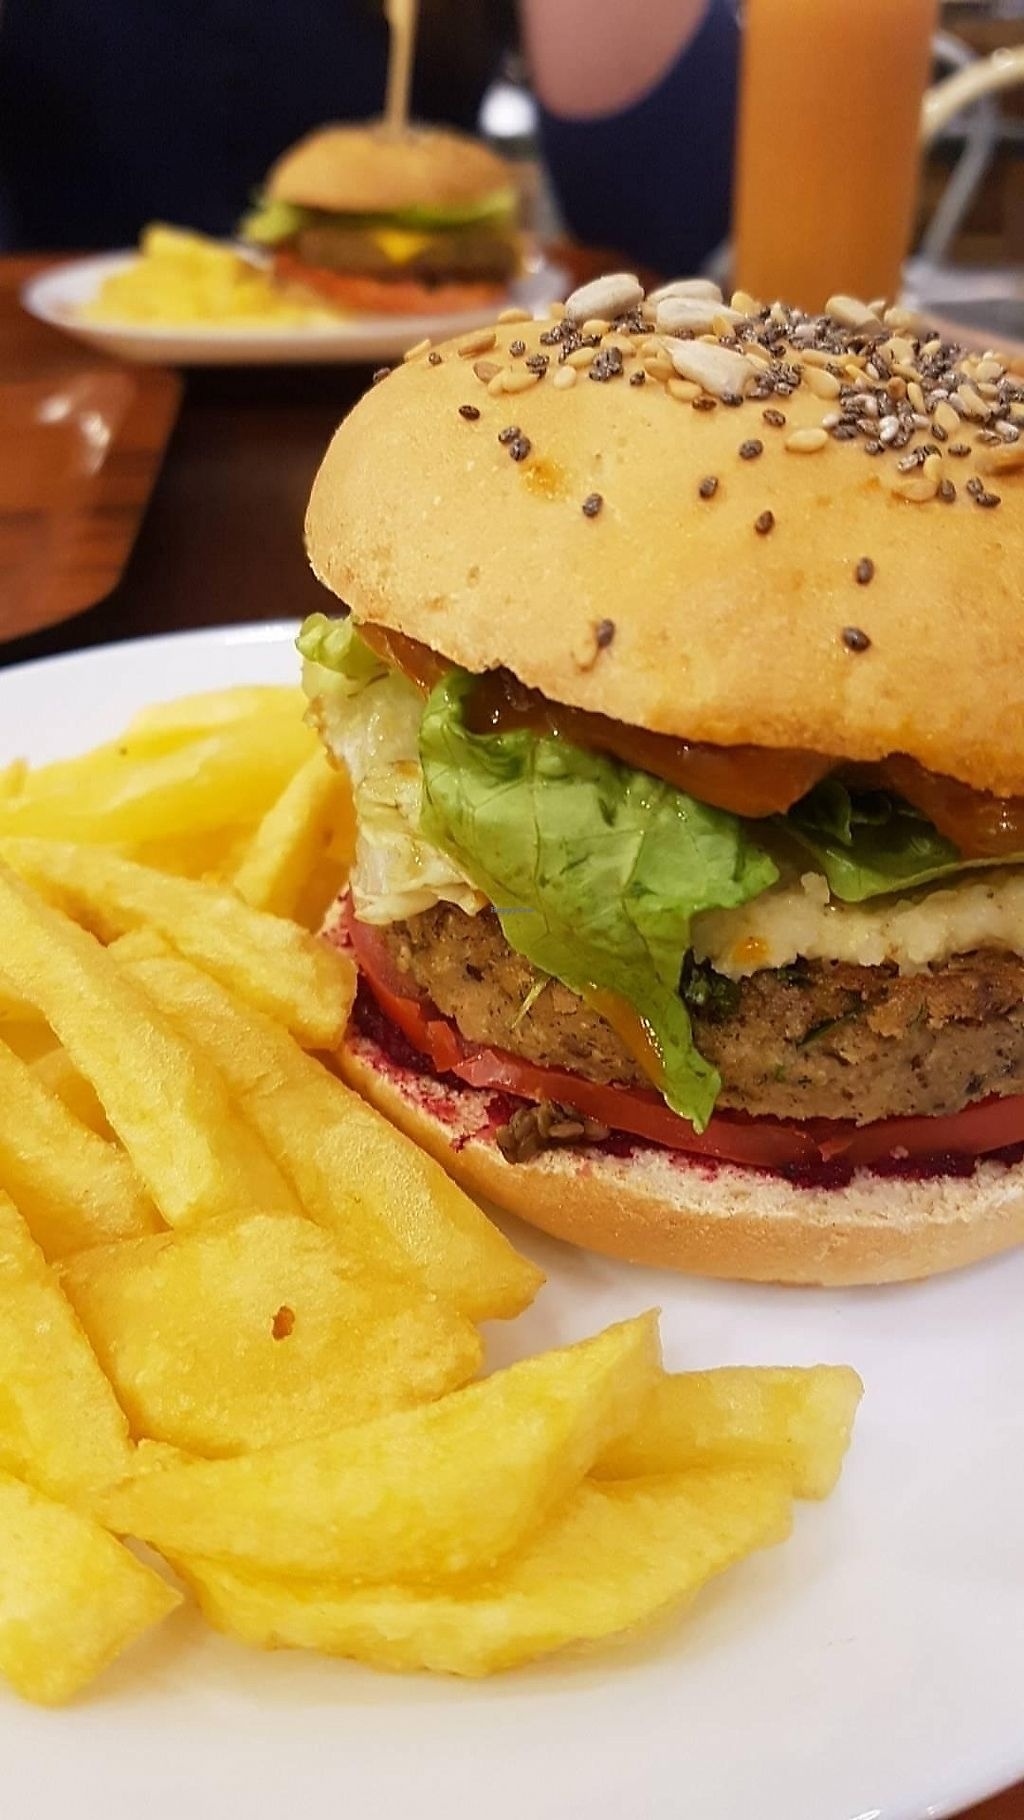 """Photo of Veggie  by <a href=""""/members/profile/Brunomlalves"""">Brunomlalves</a> <br/>Soy quinoa burger <br/> July 6, 2017  - <a href='/contact/abuse/image/95282/277285'>Report</a>"""